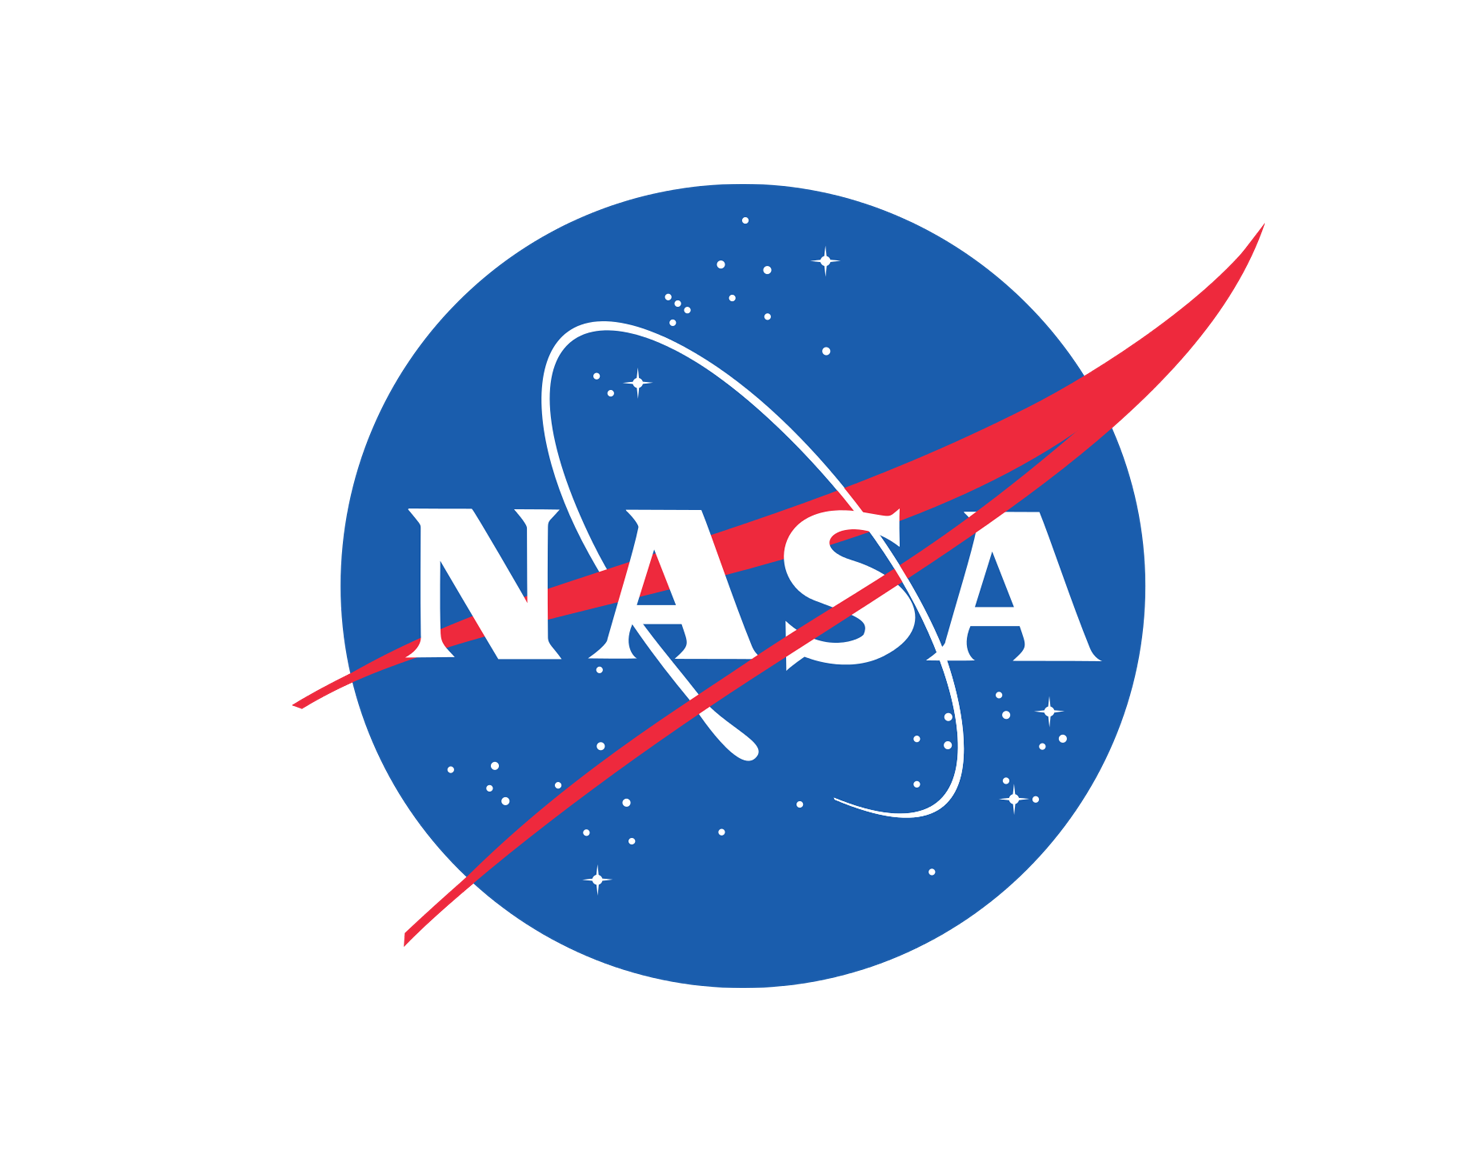 Webinar recording – What can we learn from NASA about leadership?